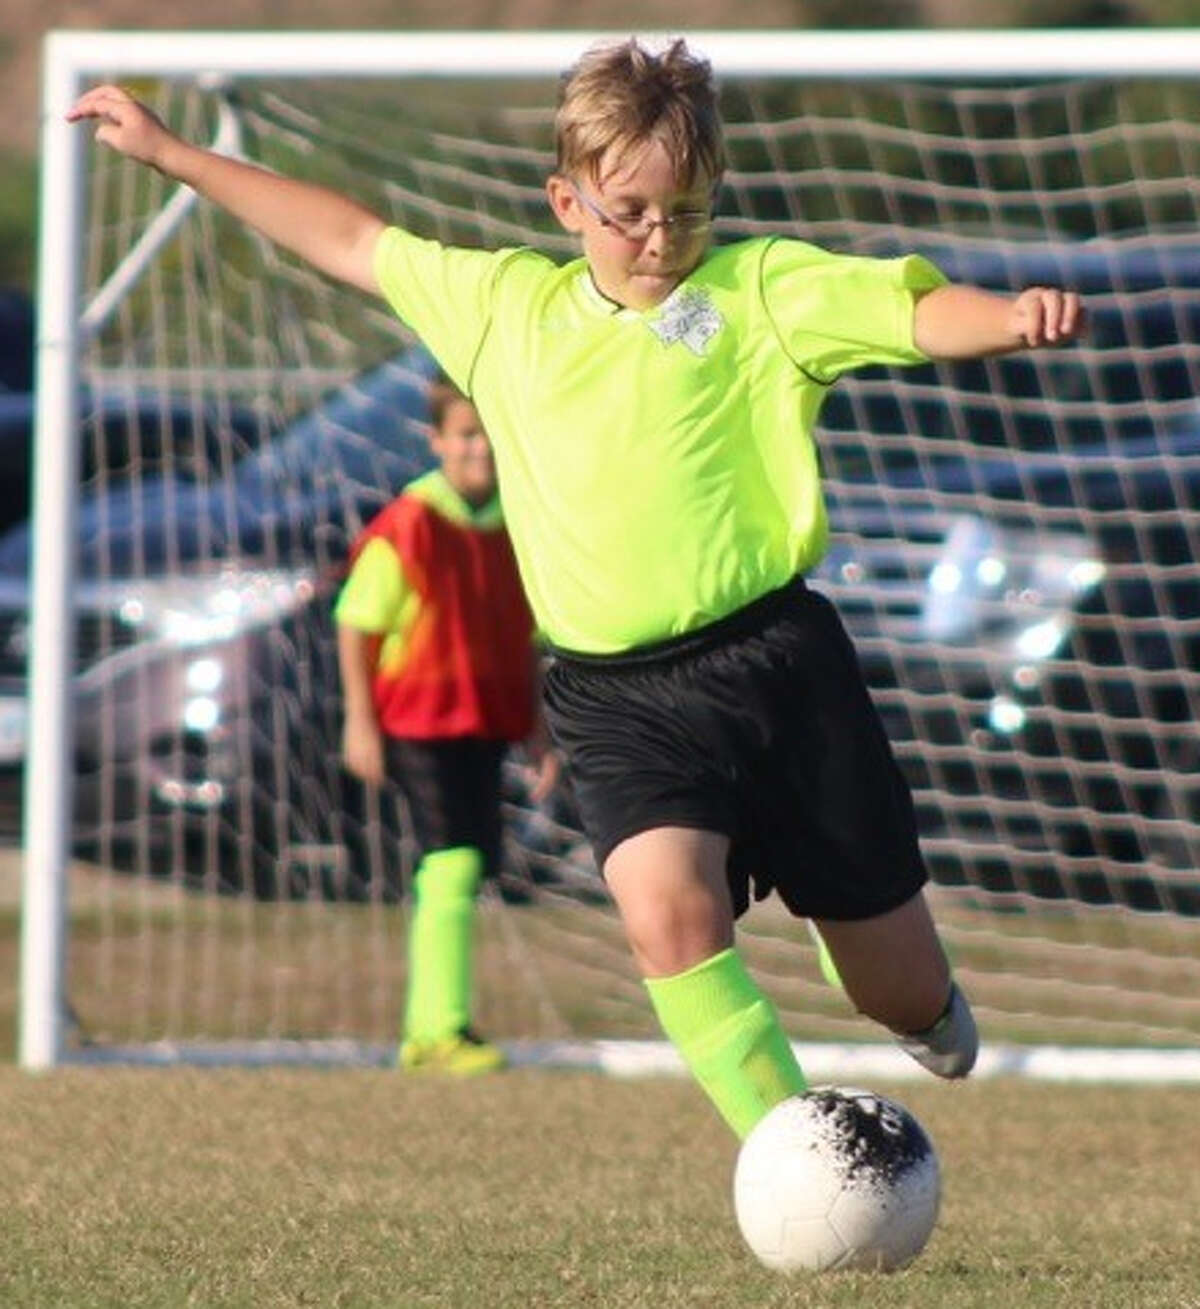 Humble ISD student, Tanner Smith, enjoys many activities including soccer. He will represent Willow Creek Elementary School during at the 2017 Lone Star Leadership Academy camp in Dallas this summer.